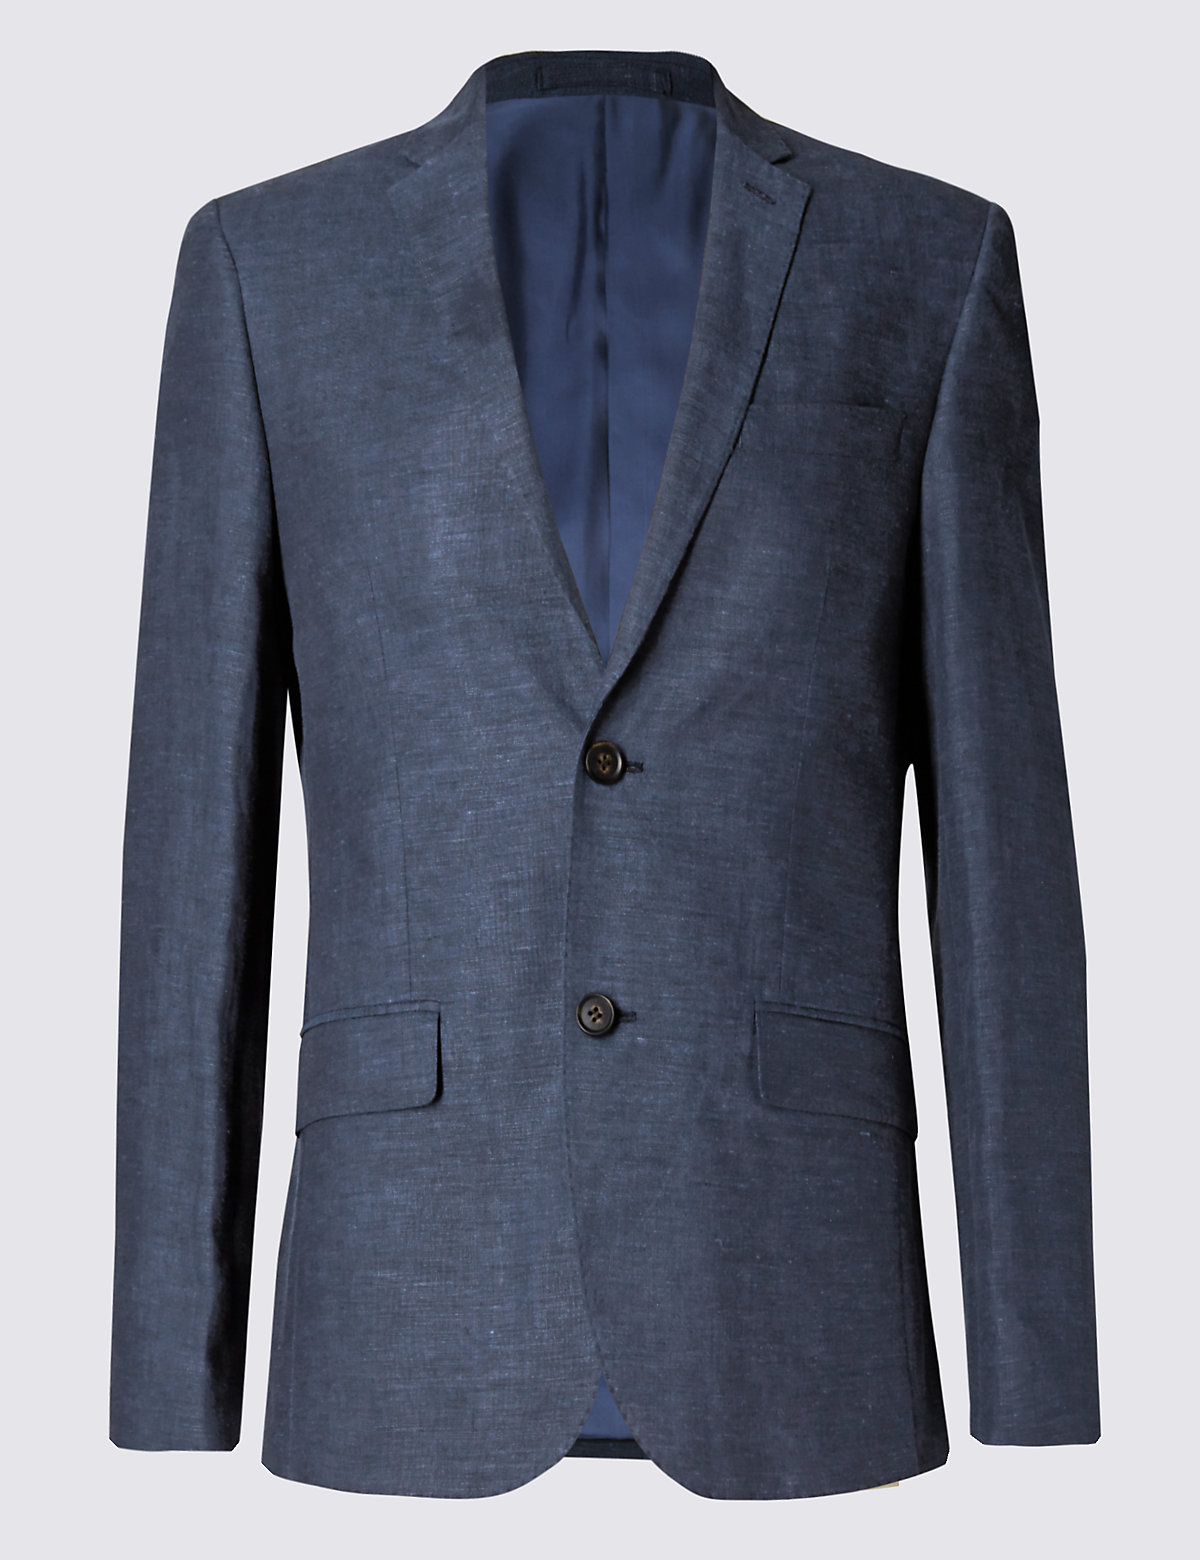 Marks & Spencer Indigo Linen Miracle™ Tailored Fit 2 Button Jacket